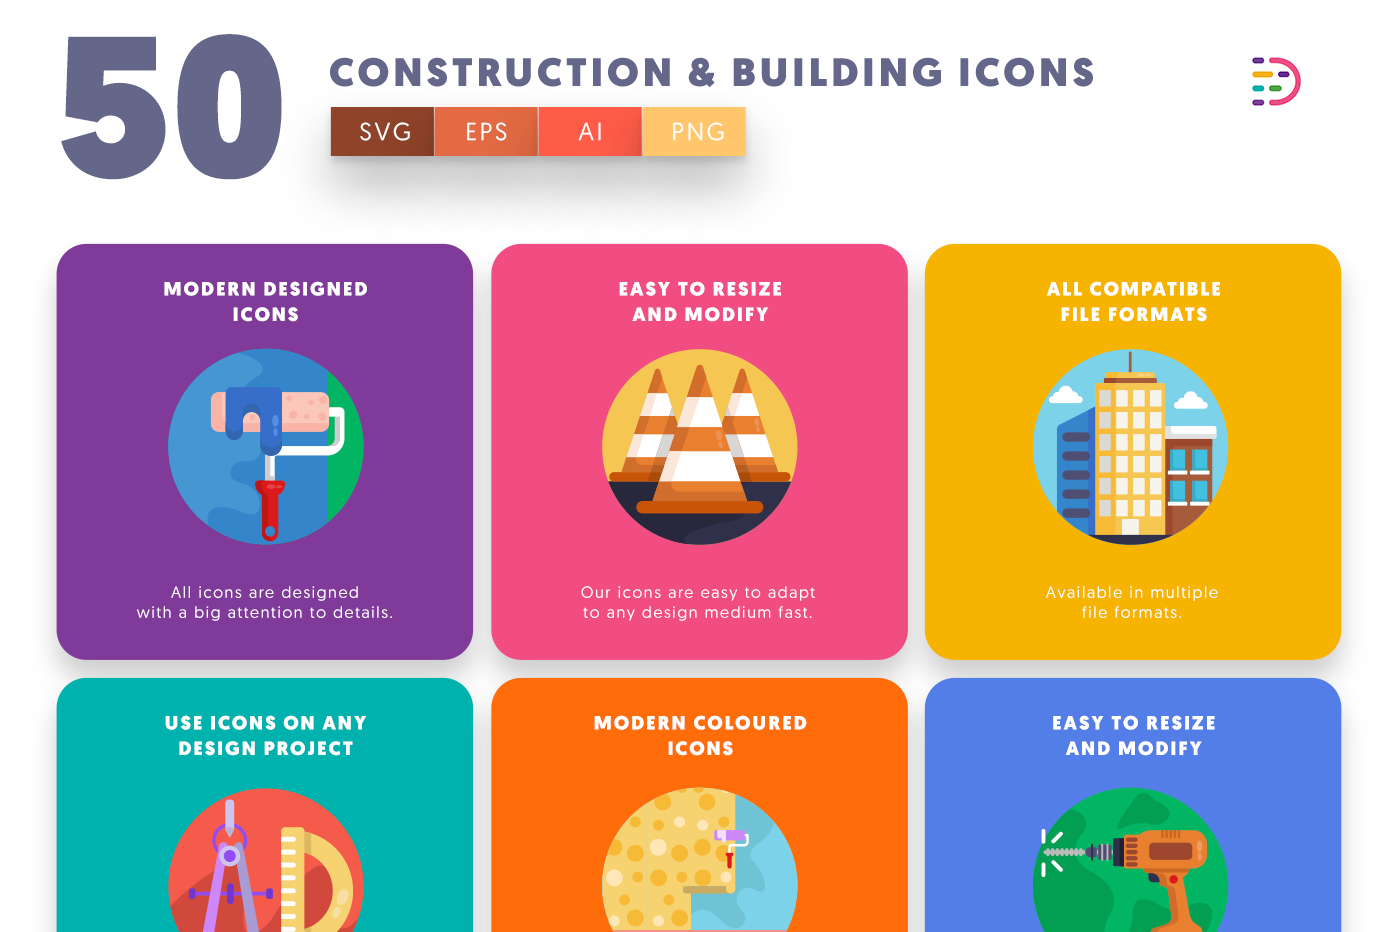 50 Construction & Building Icons with colored backgrounds